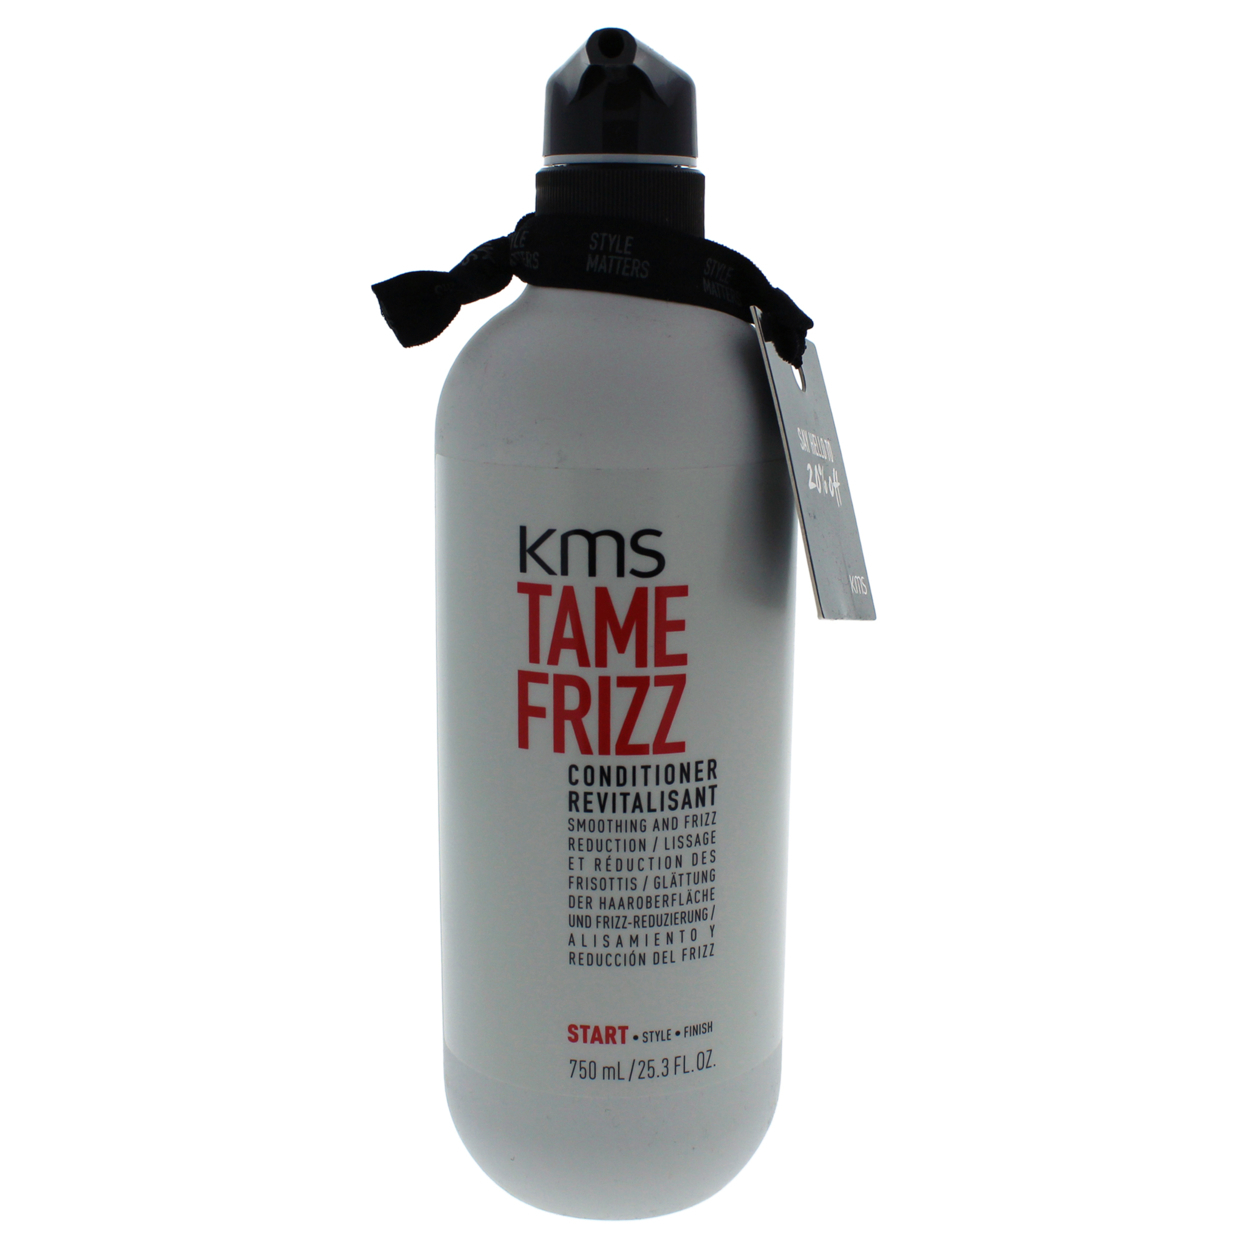 Tame Frizz Conditioner by KMS for Unisex - 25.3 oz Conditioner 59b3d4572a00e46a9671ab83